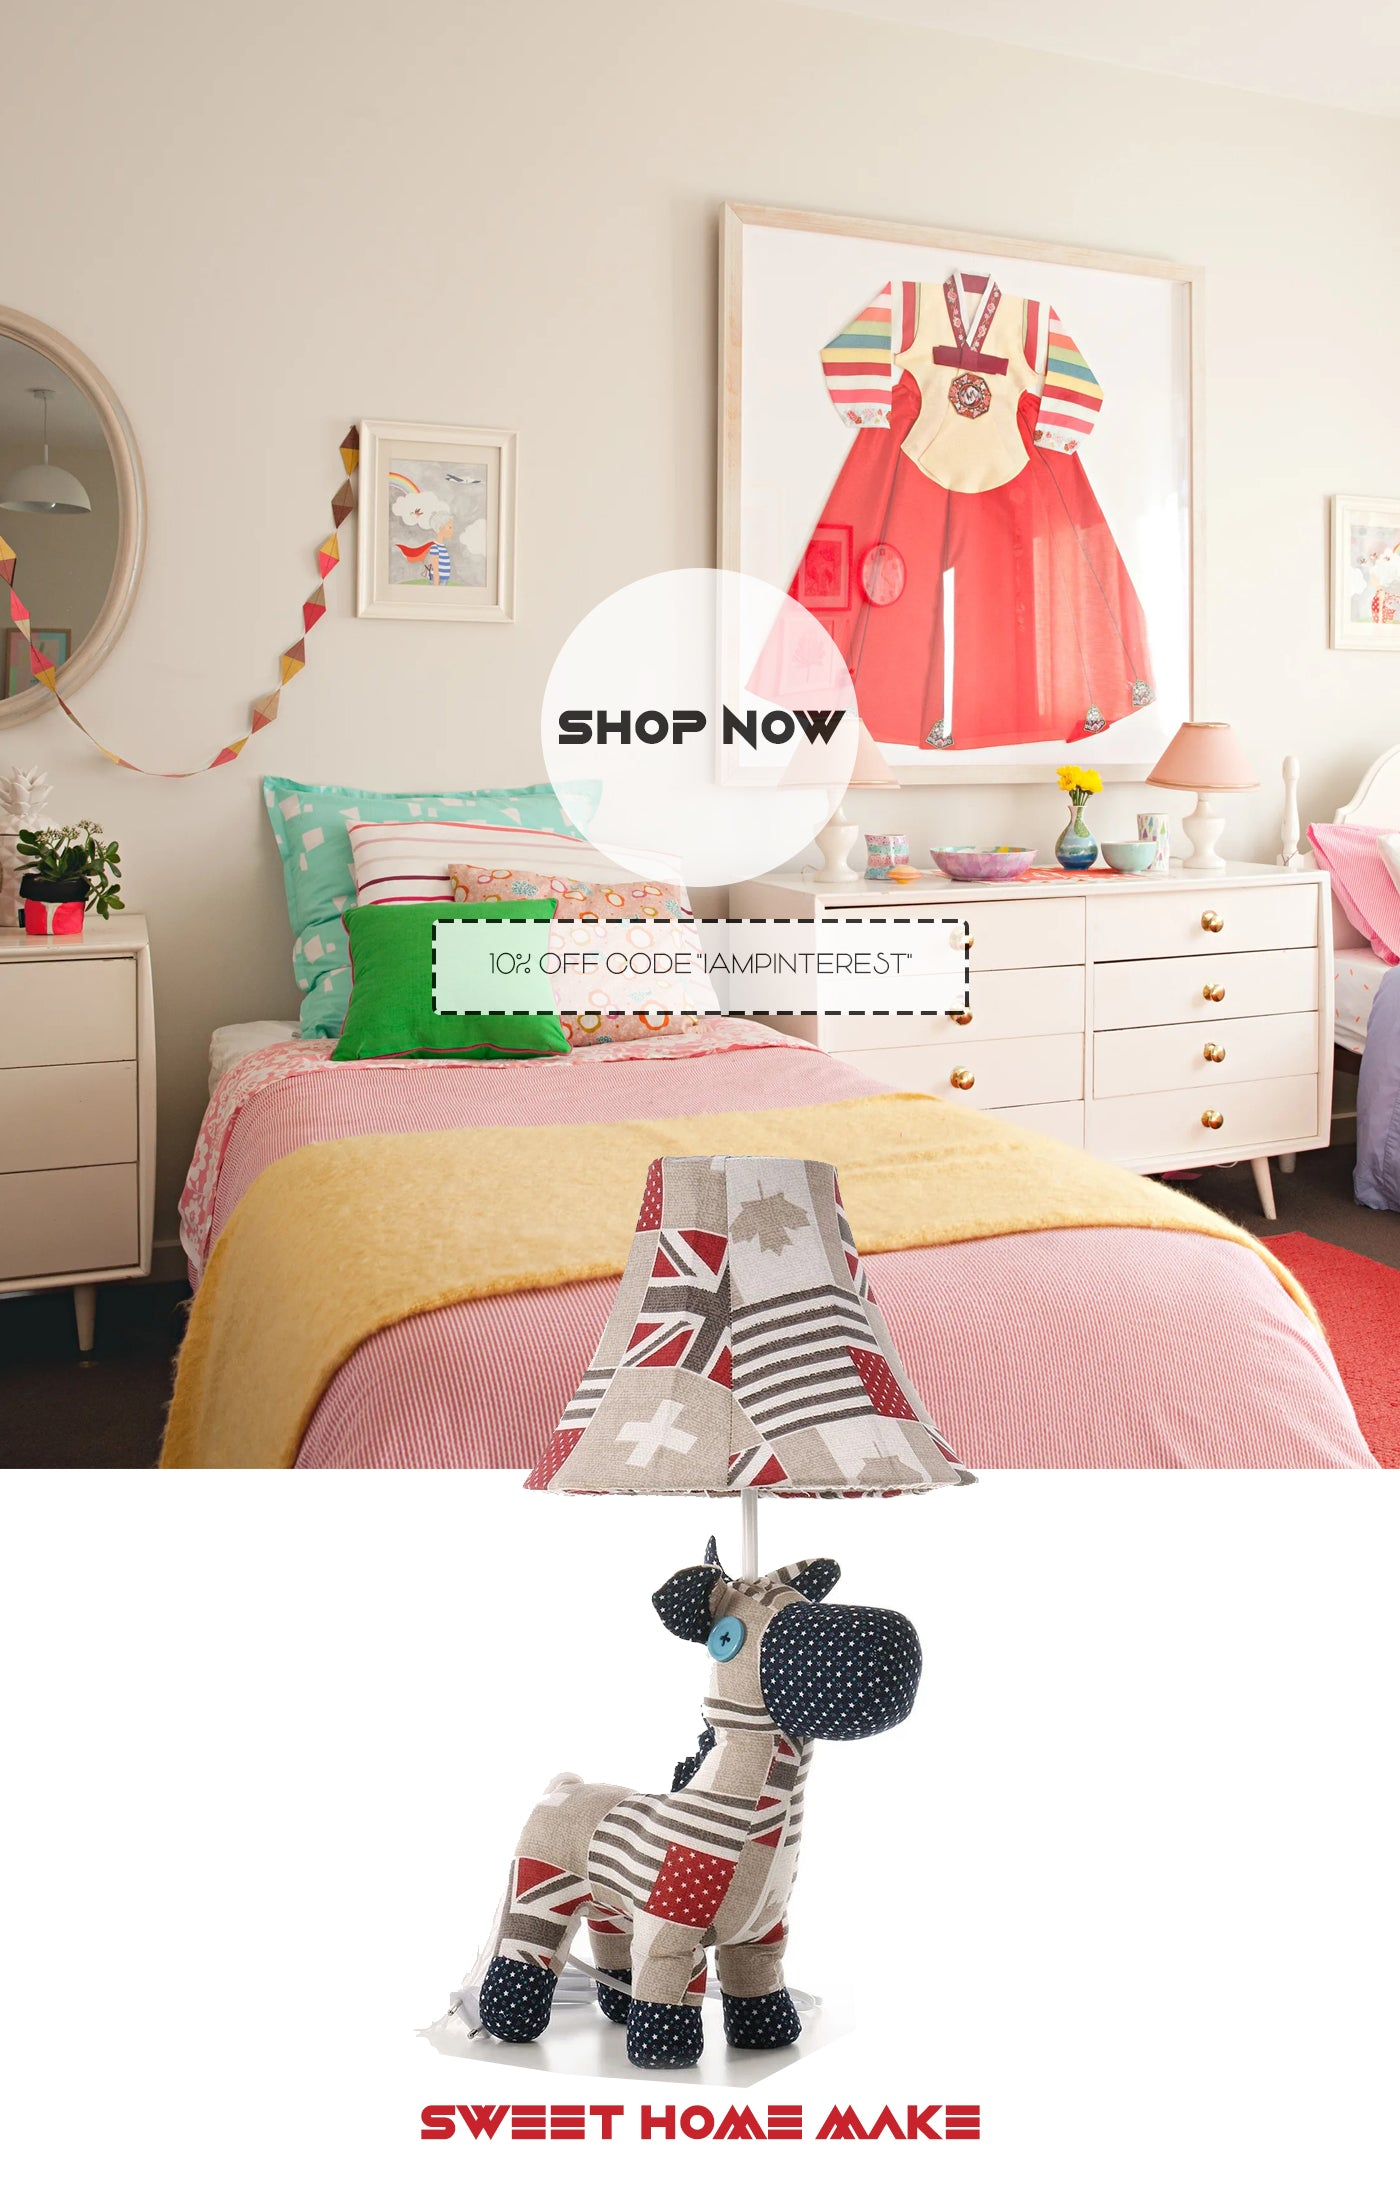 Horse Toys with Table Lamp For Kids and Nursery Room Decor